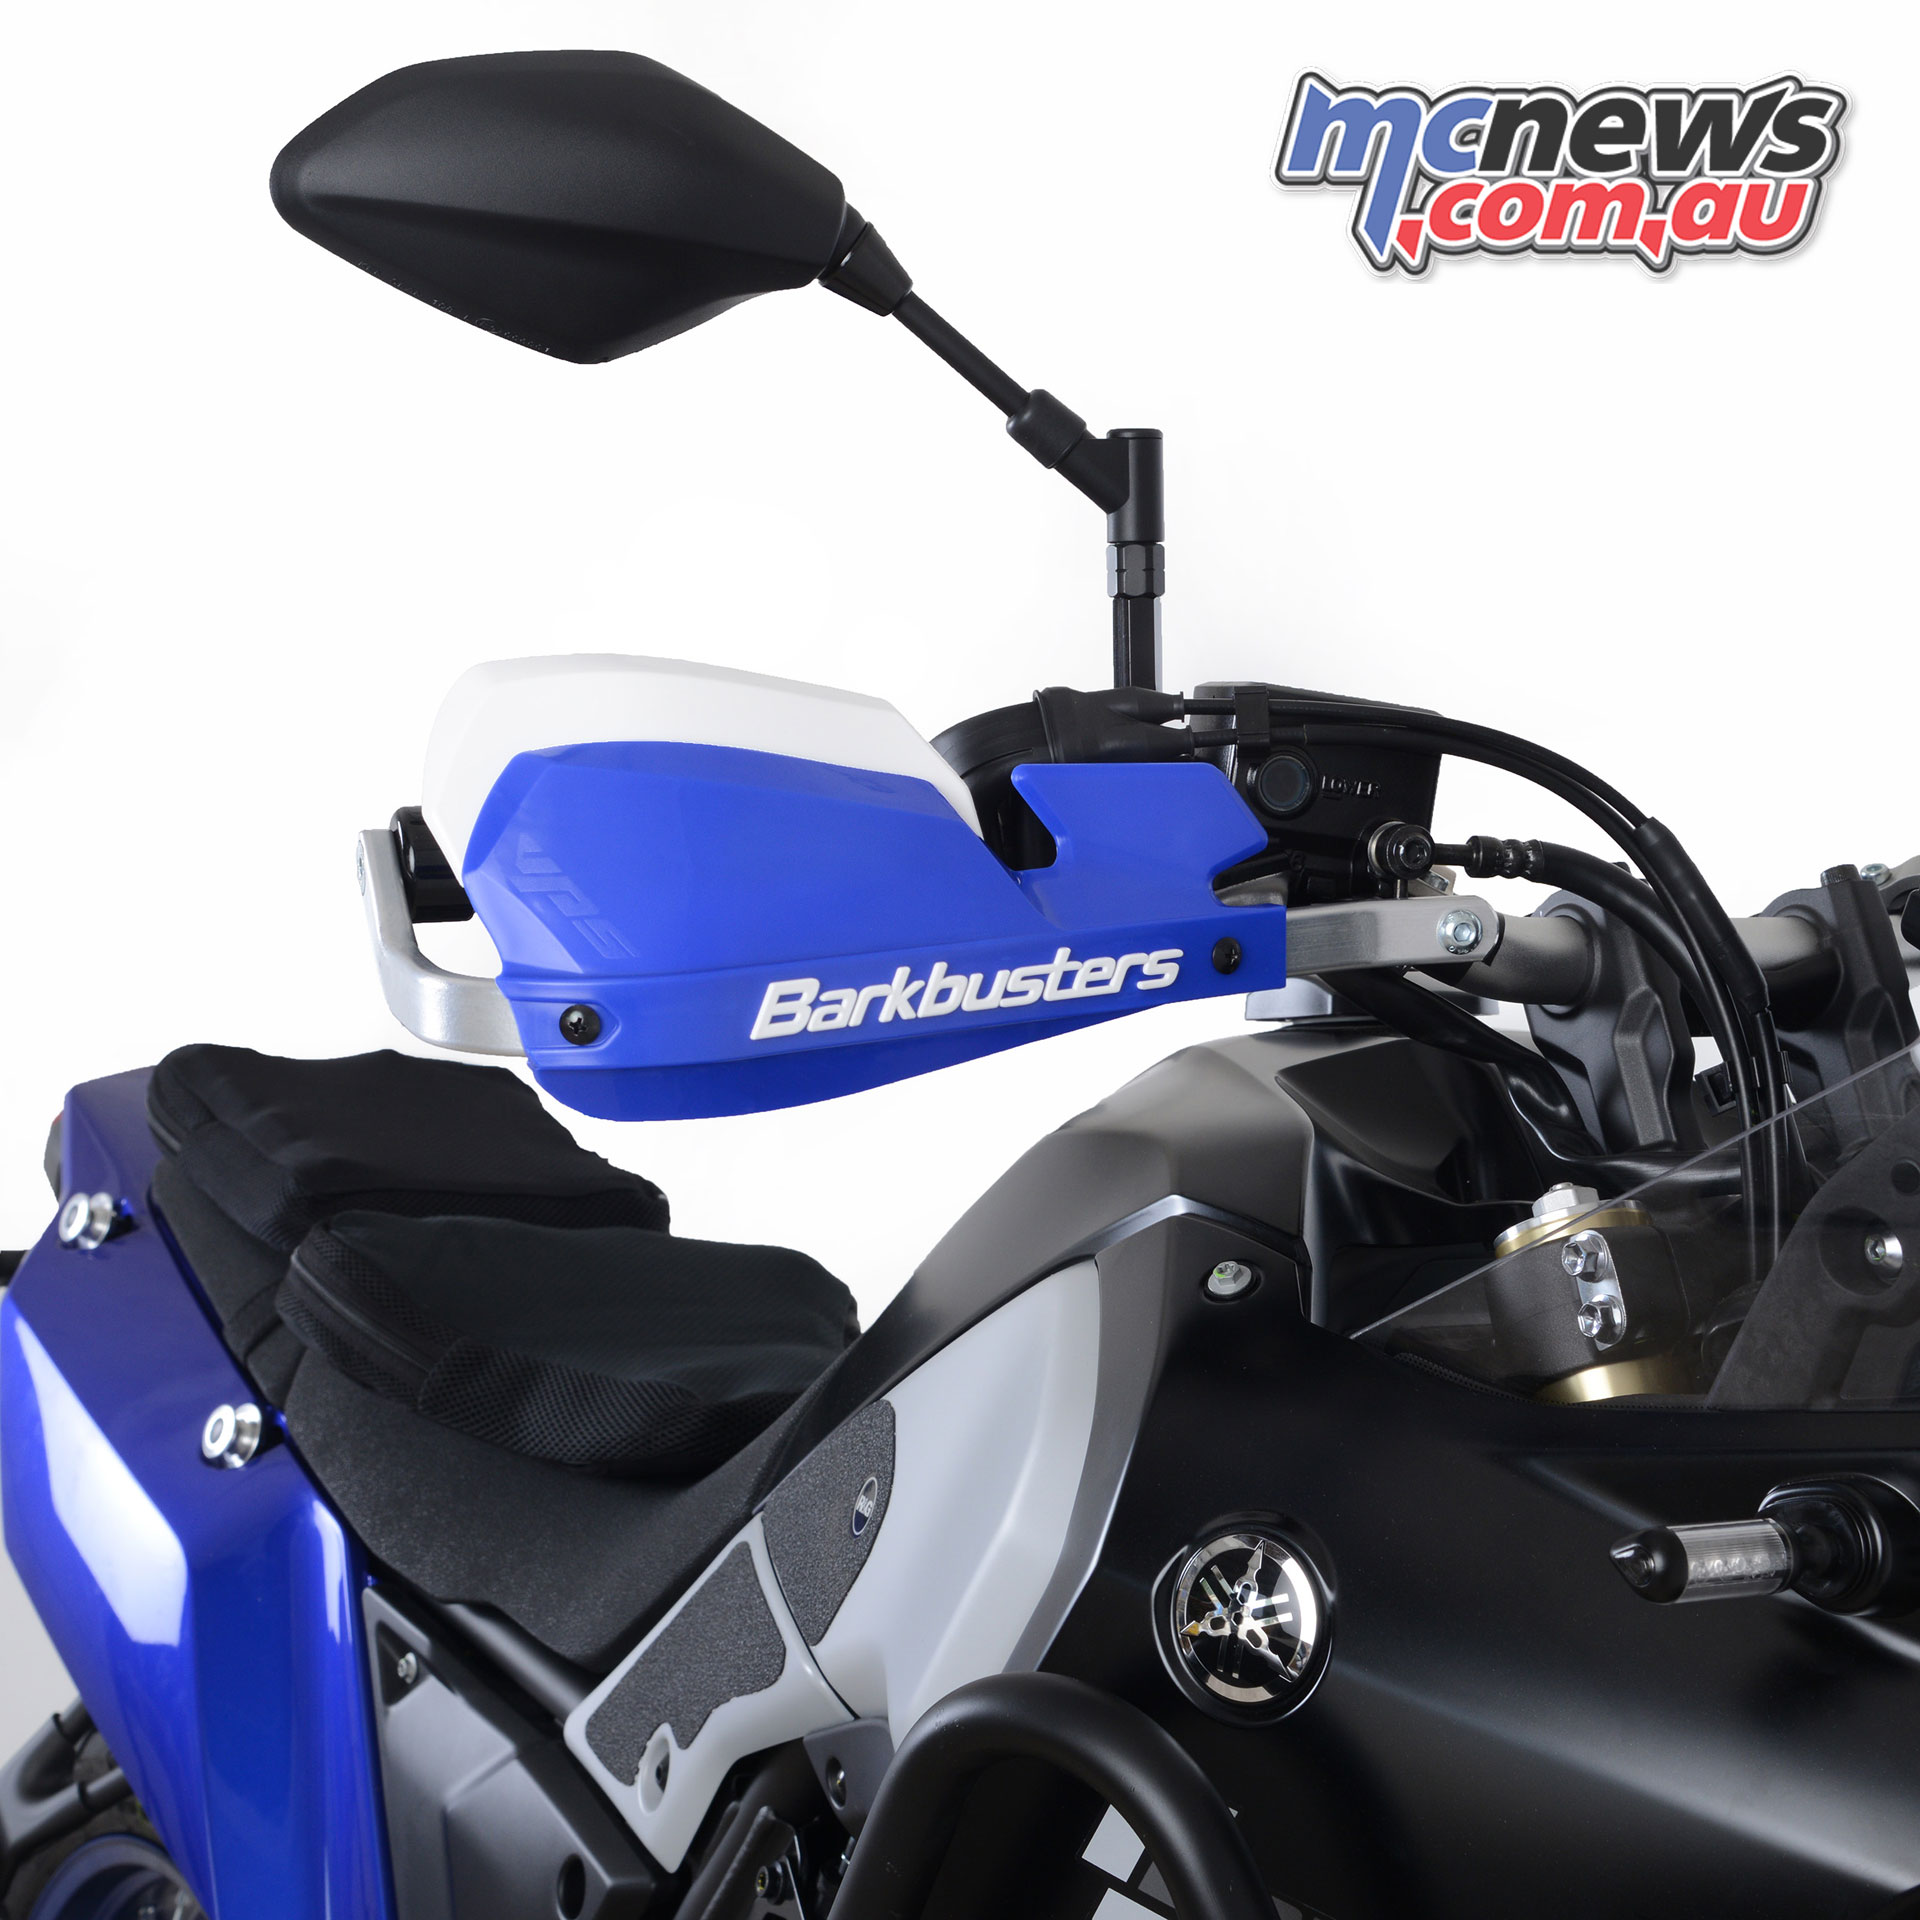 Barkbusters Tenere Yamaha T fitted with BHG VPS